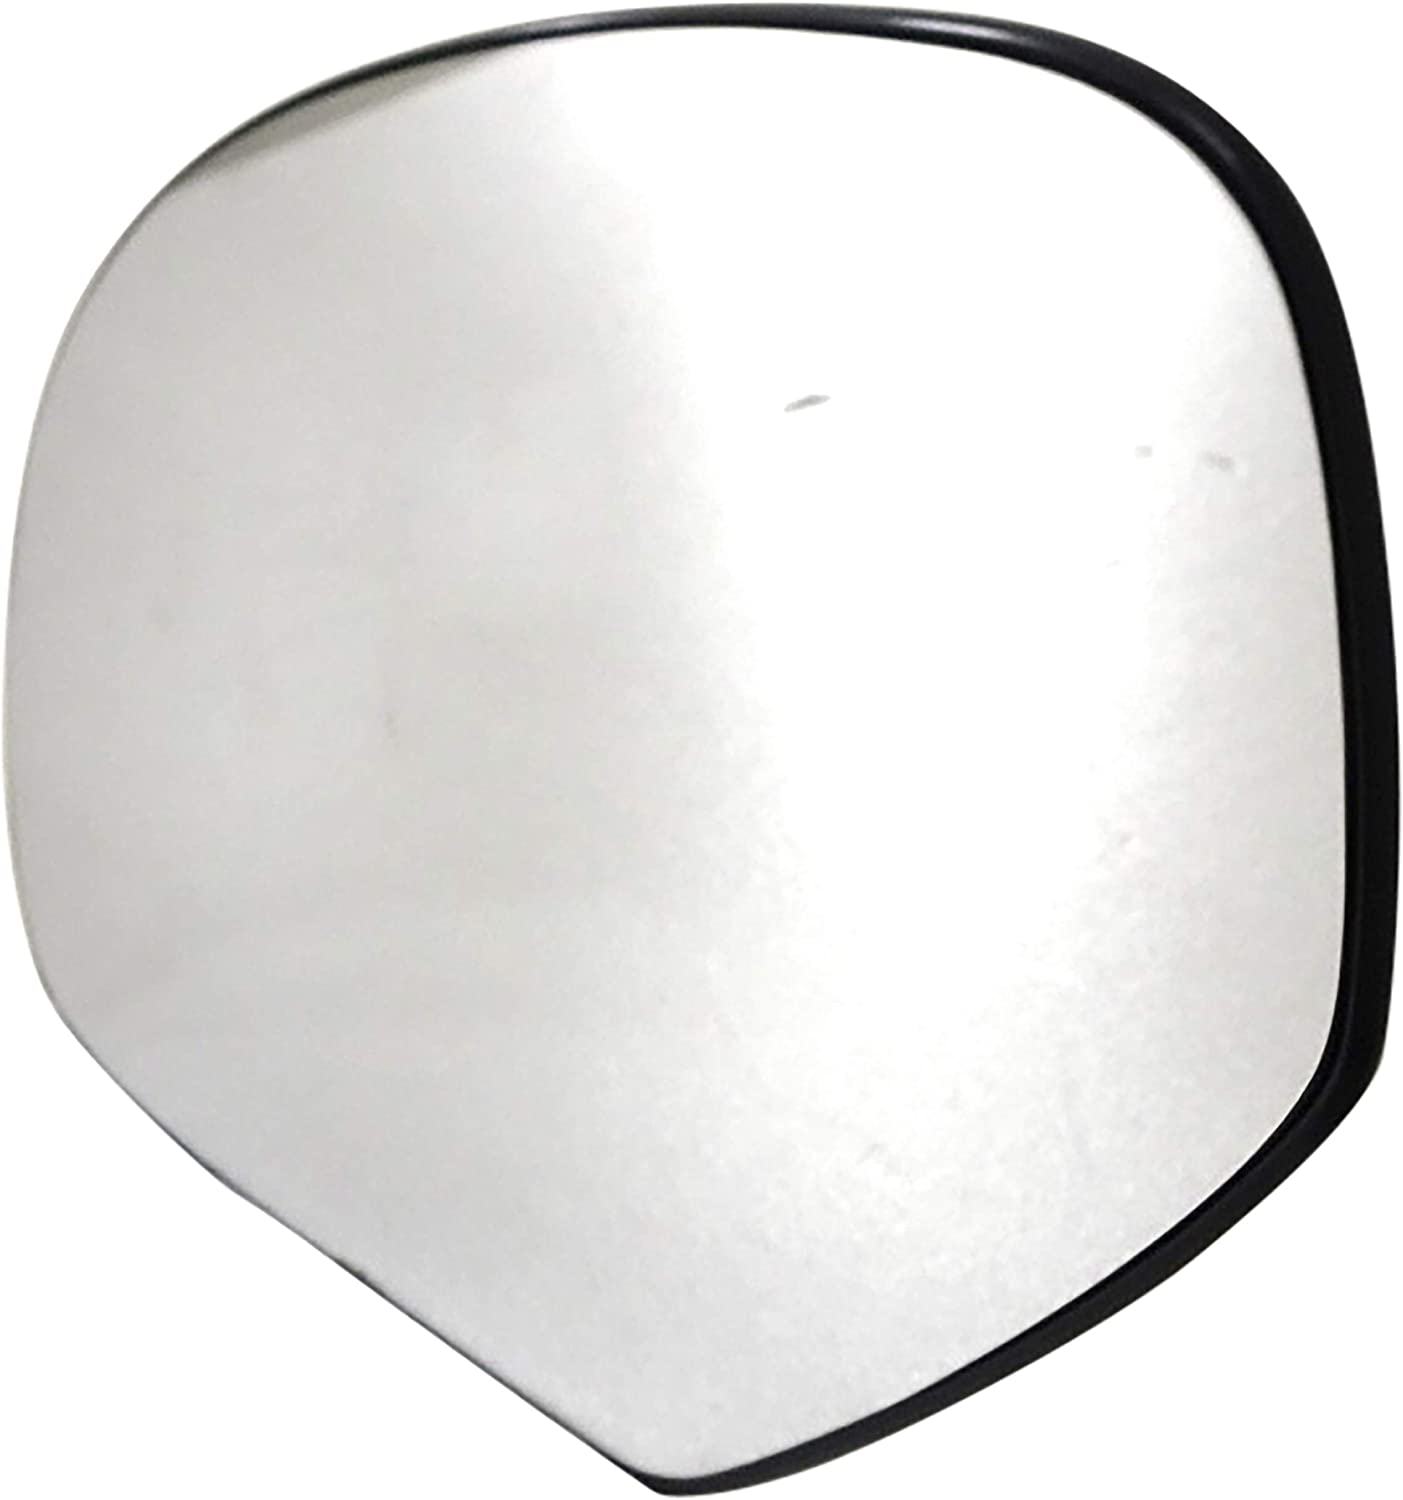 Dorman 56081 Driver Side Max 51% OFF Door for Mirror Over item handling Glass Select Cadillac